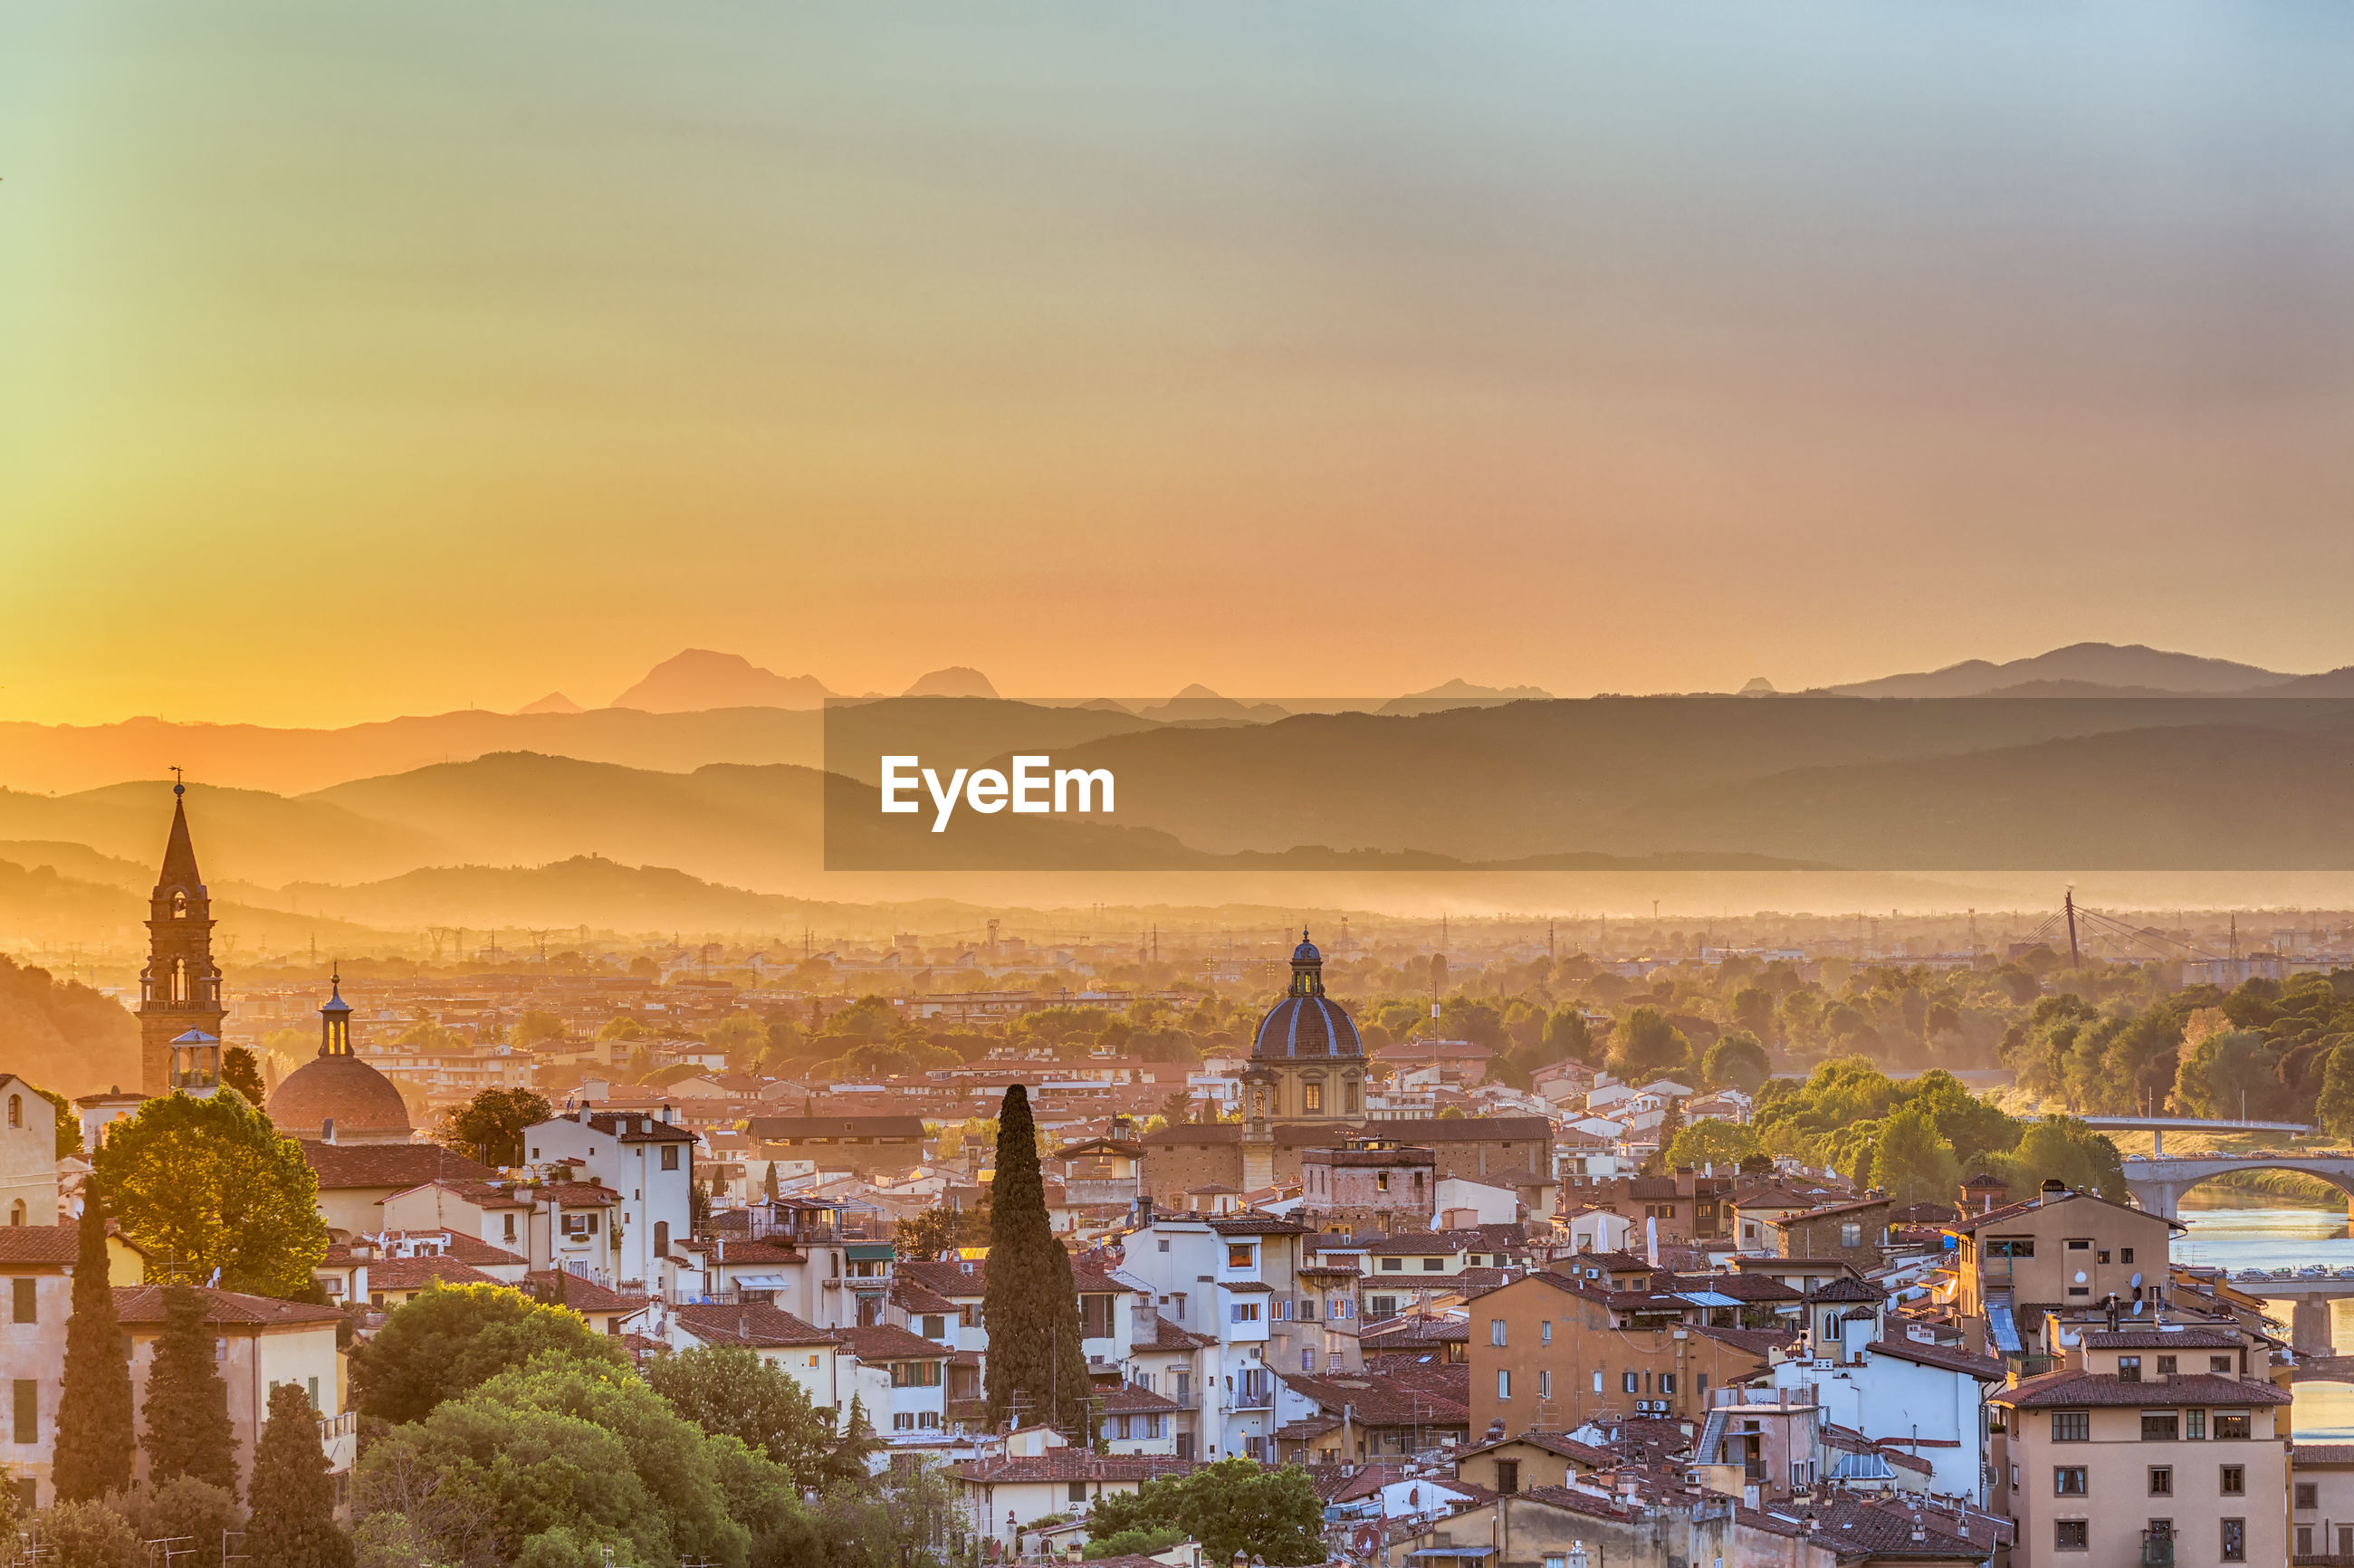 High angle view of city against silhouette mountains during sunset